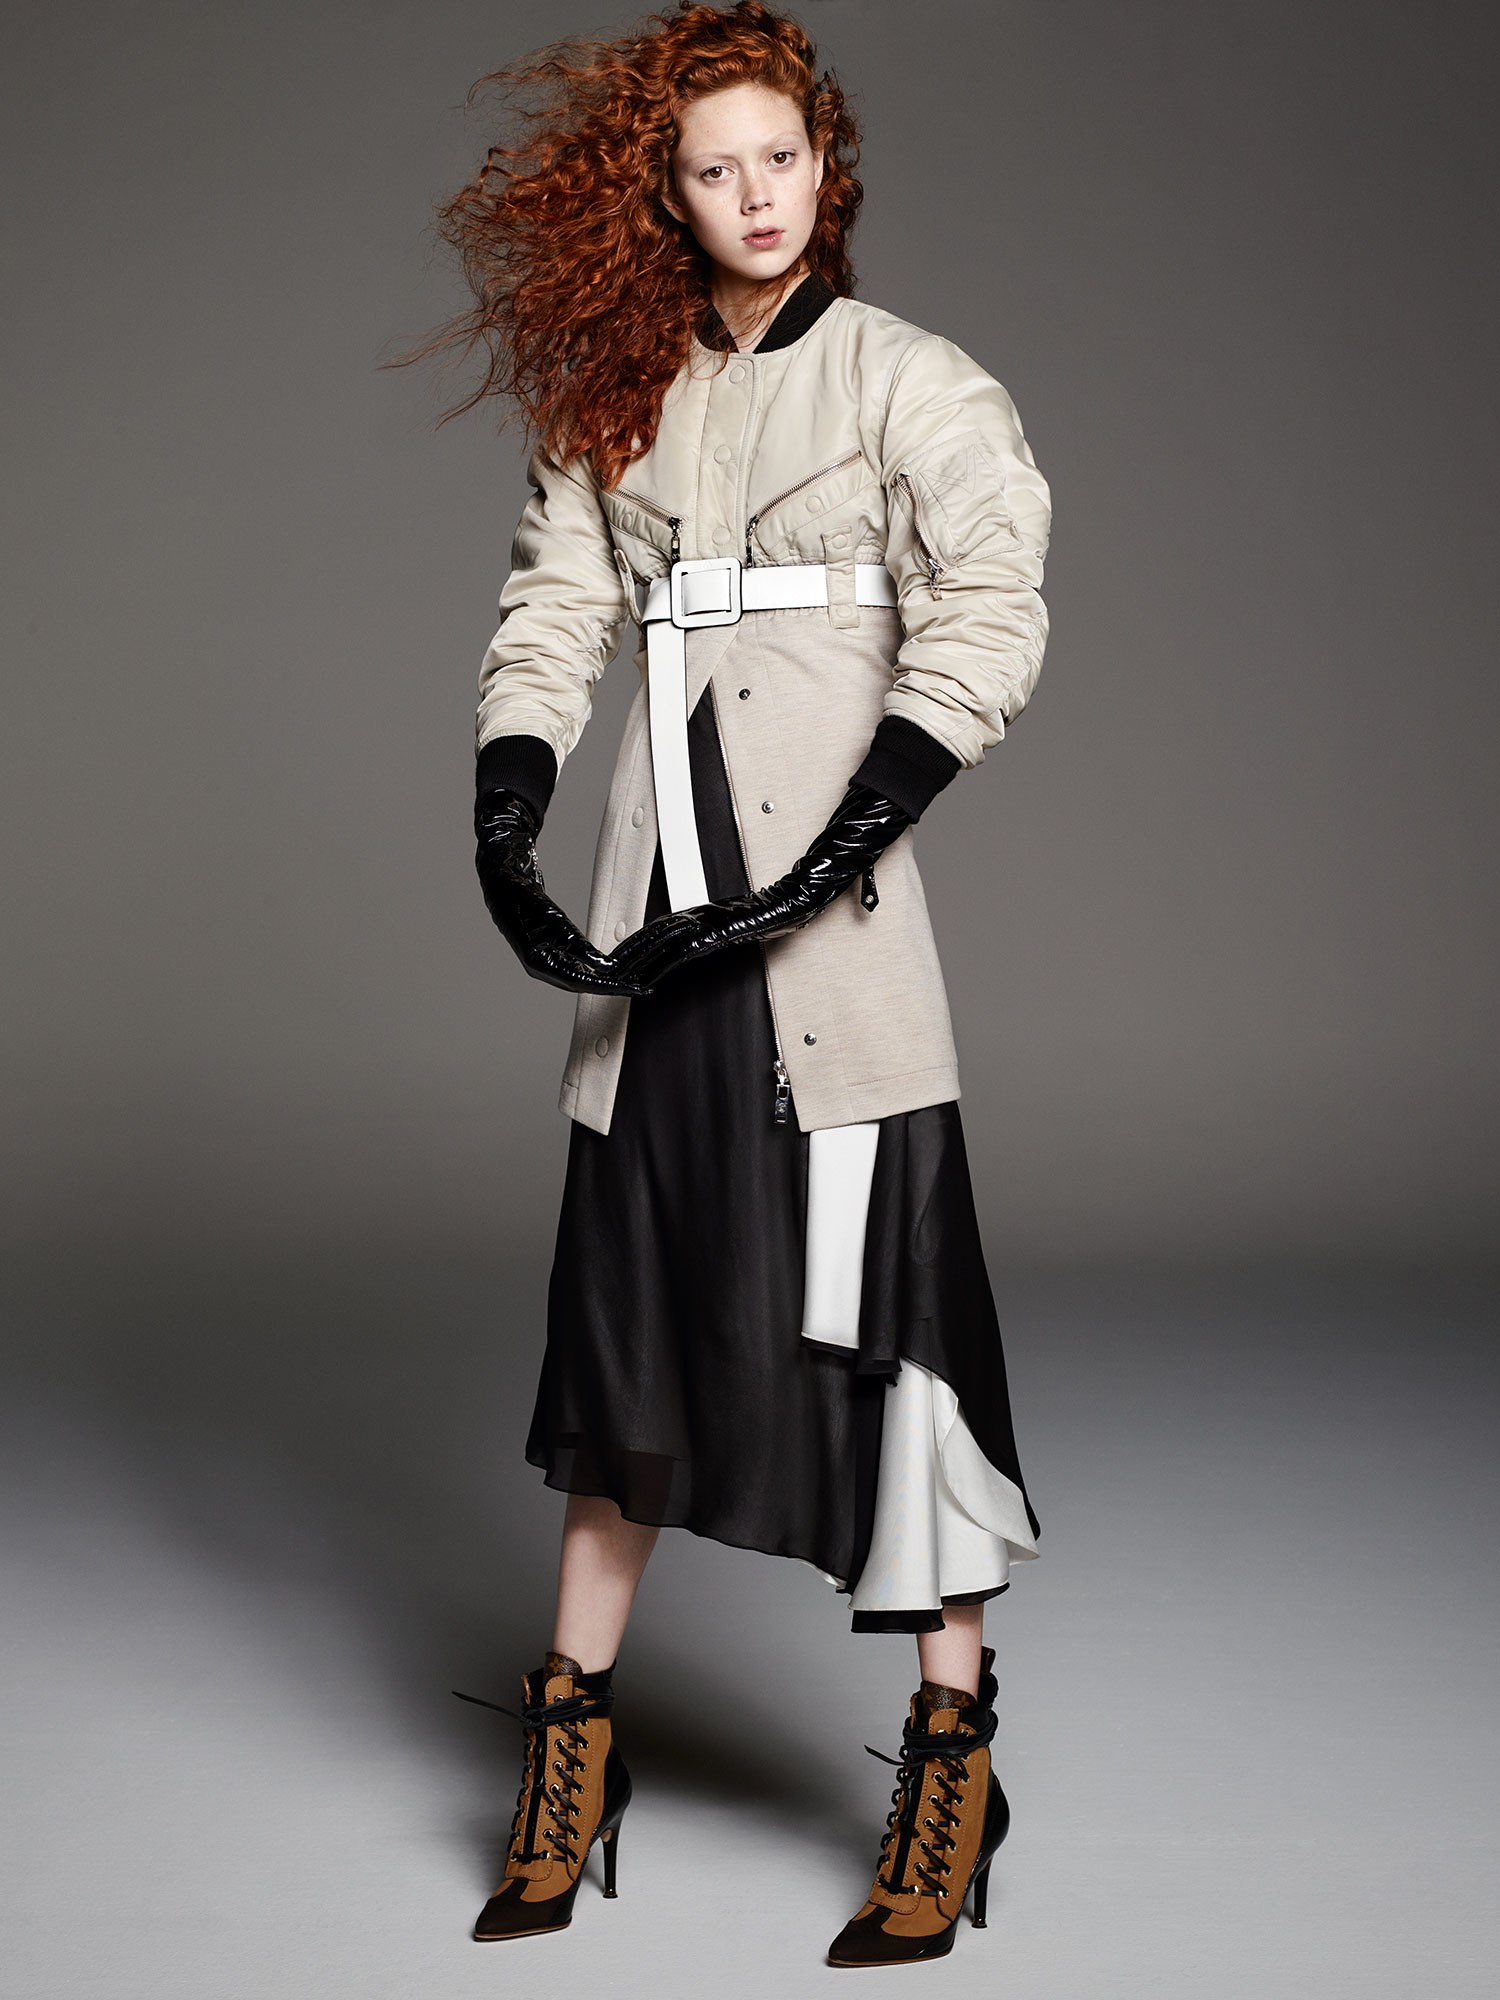 Hacked Natalie Westling nude (55 foto and video), Sexy, Cleavage, Selfie, lingerie 2006